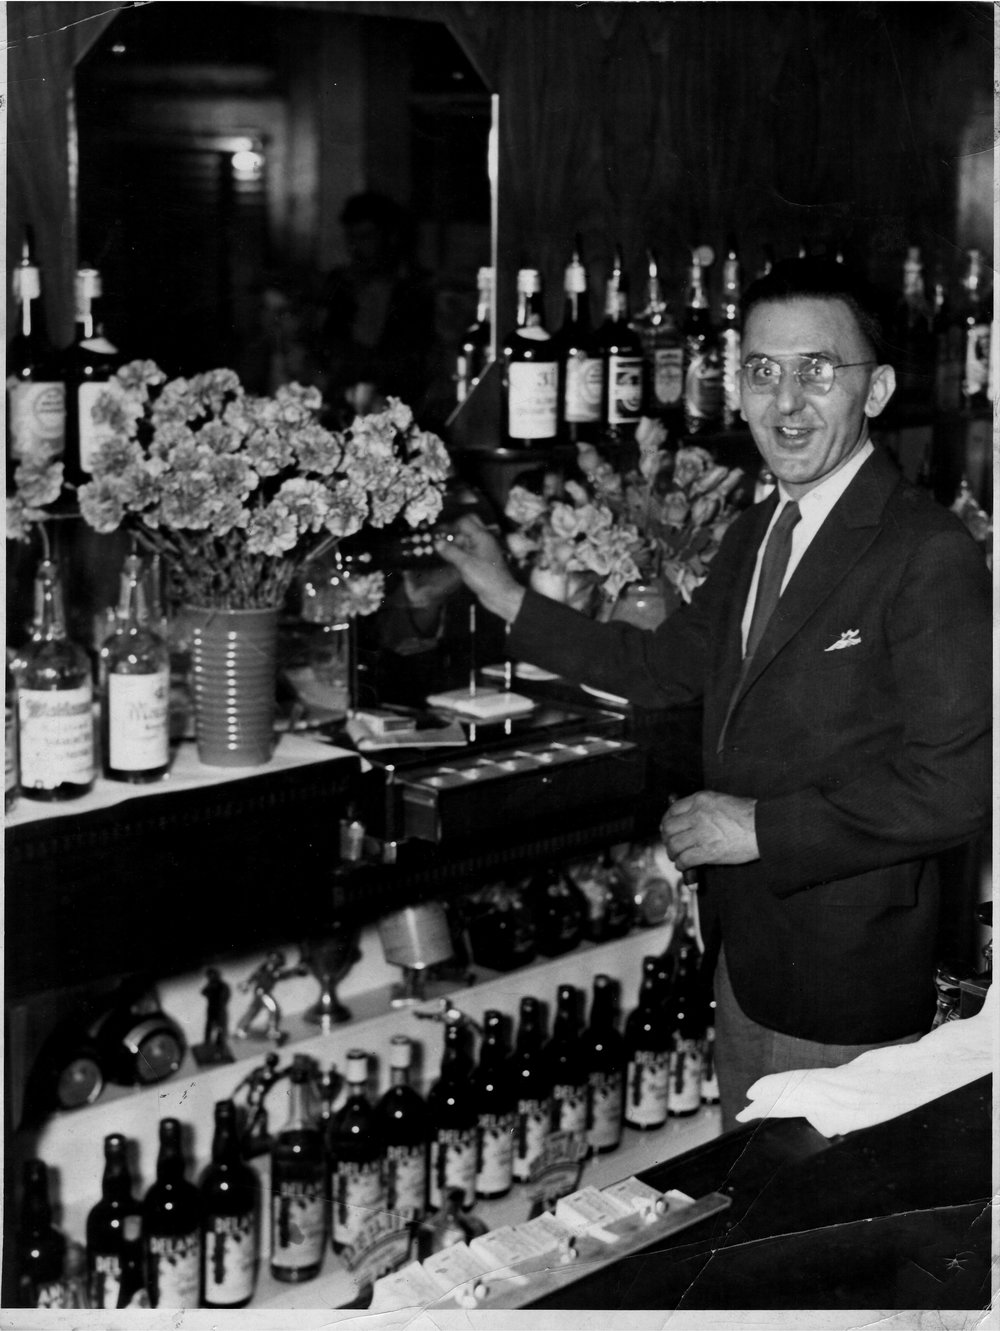 Henry-Gunselman-behind-the-bar.jpg